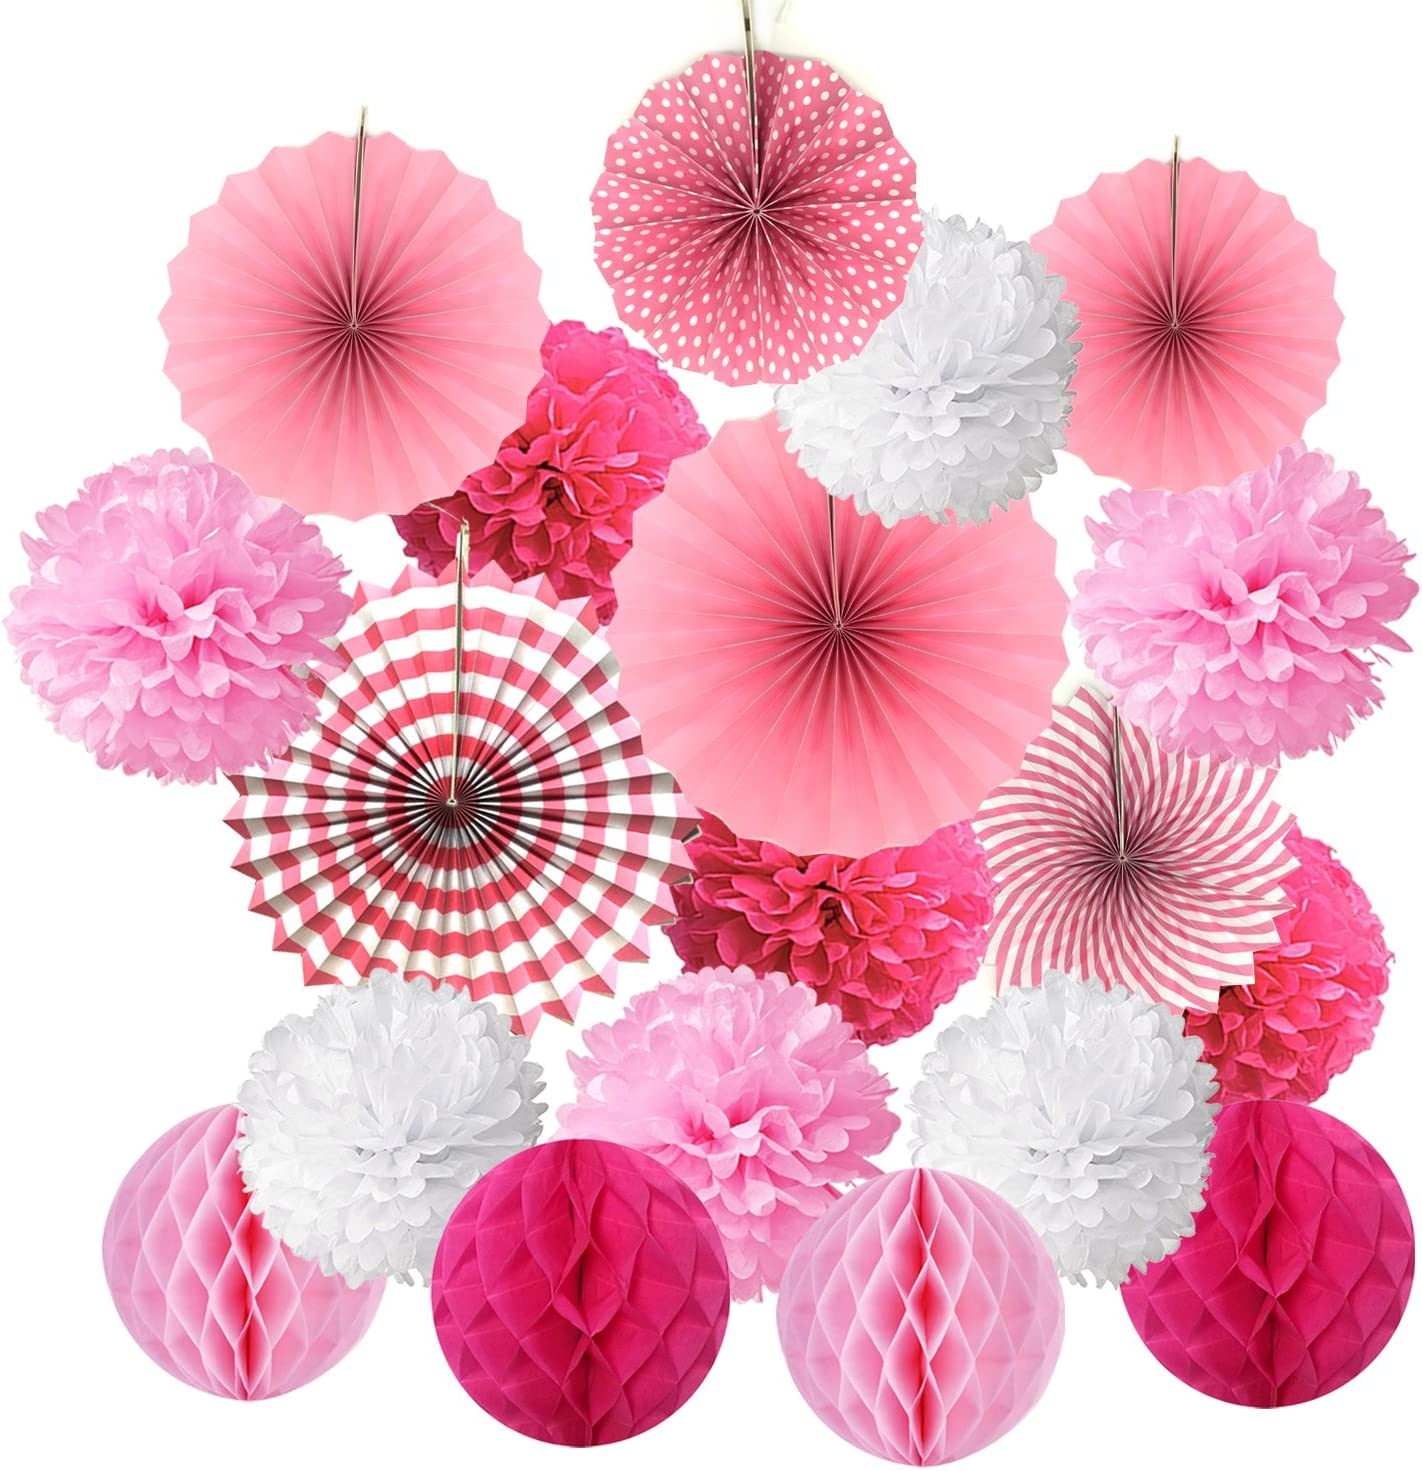 6x Paper Fan Flowers Wedding Baby Birthday Party Tissue Paper Table Decor Pink